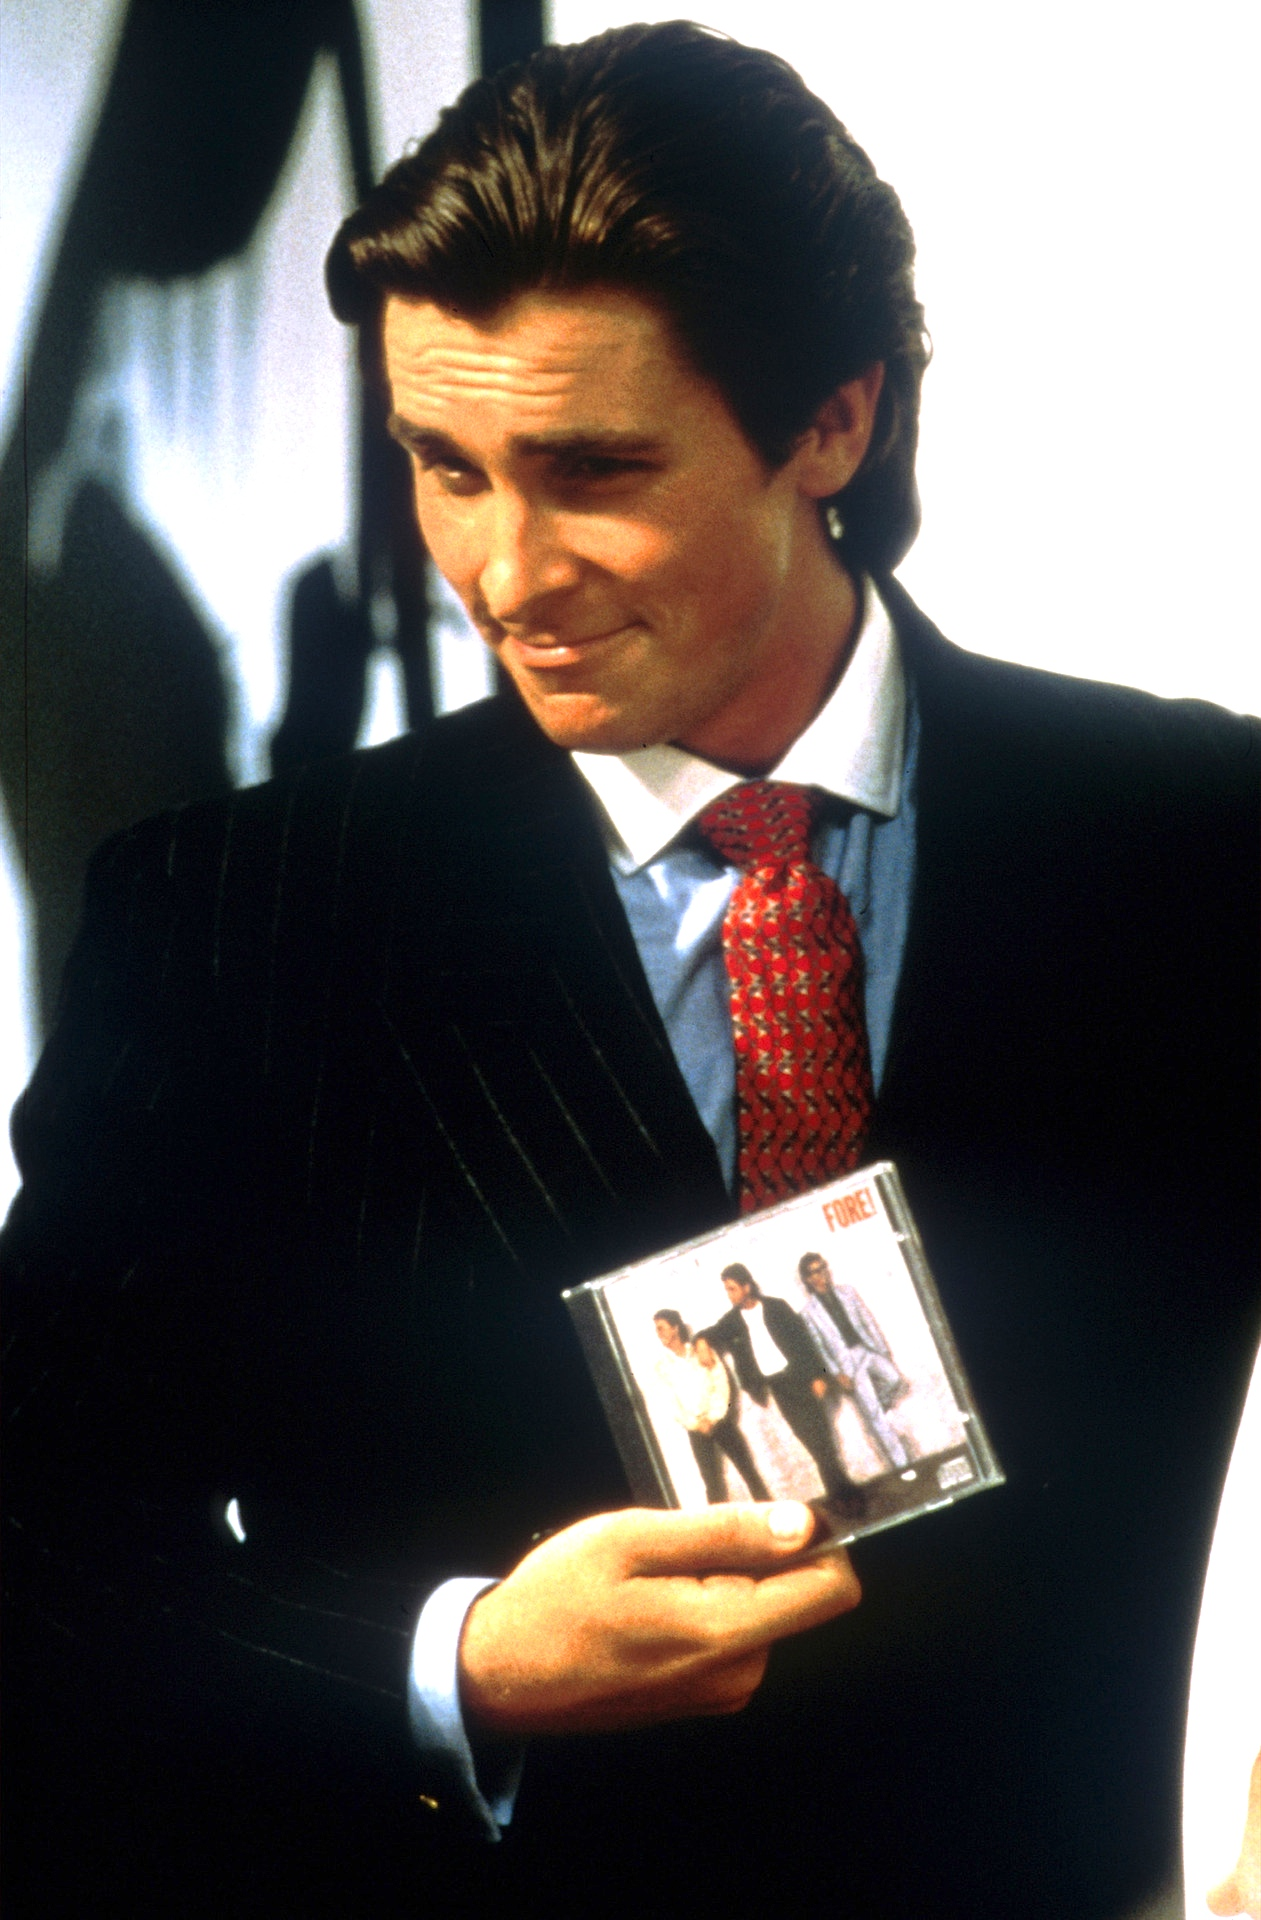 american inequality in american psycho American inequality in american psycho set in the manhattan of 1989, brett easton ellis's novel american psycho sketches the life of patrick bateman, an attractive 26 .